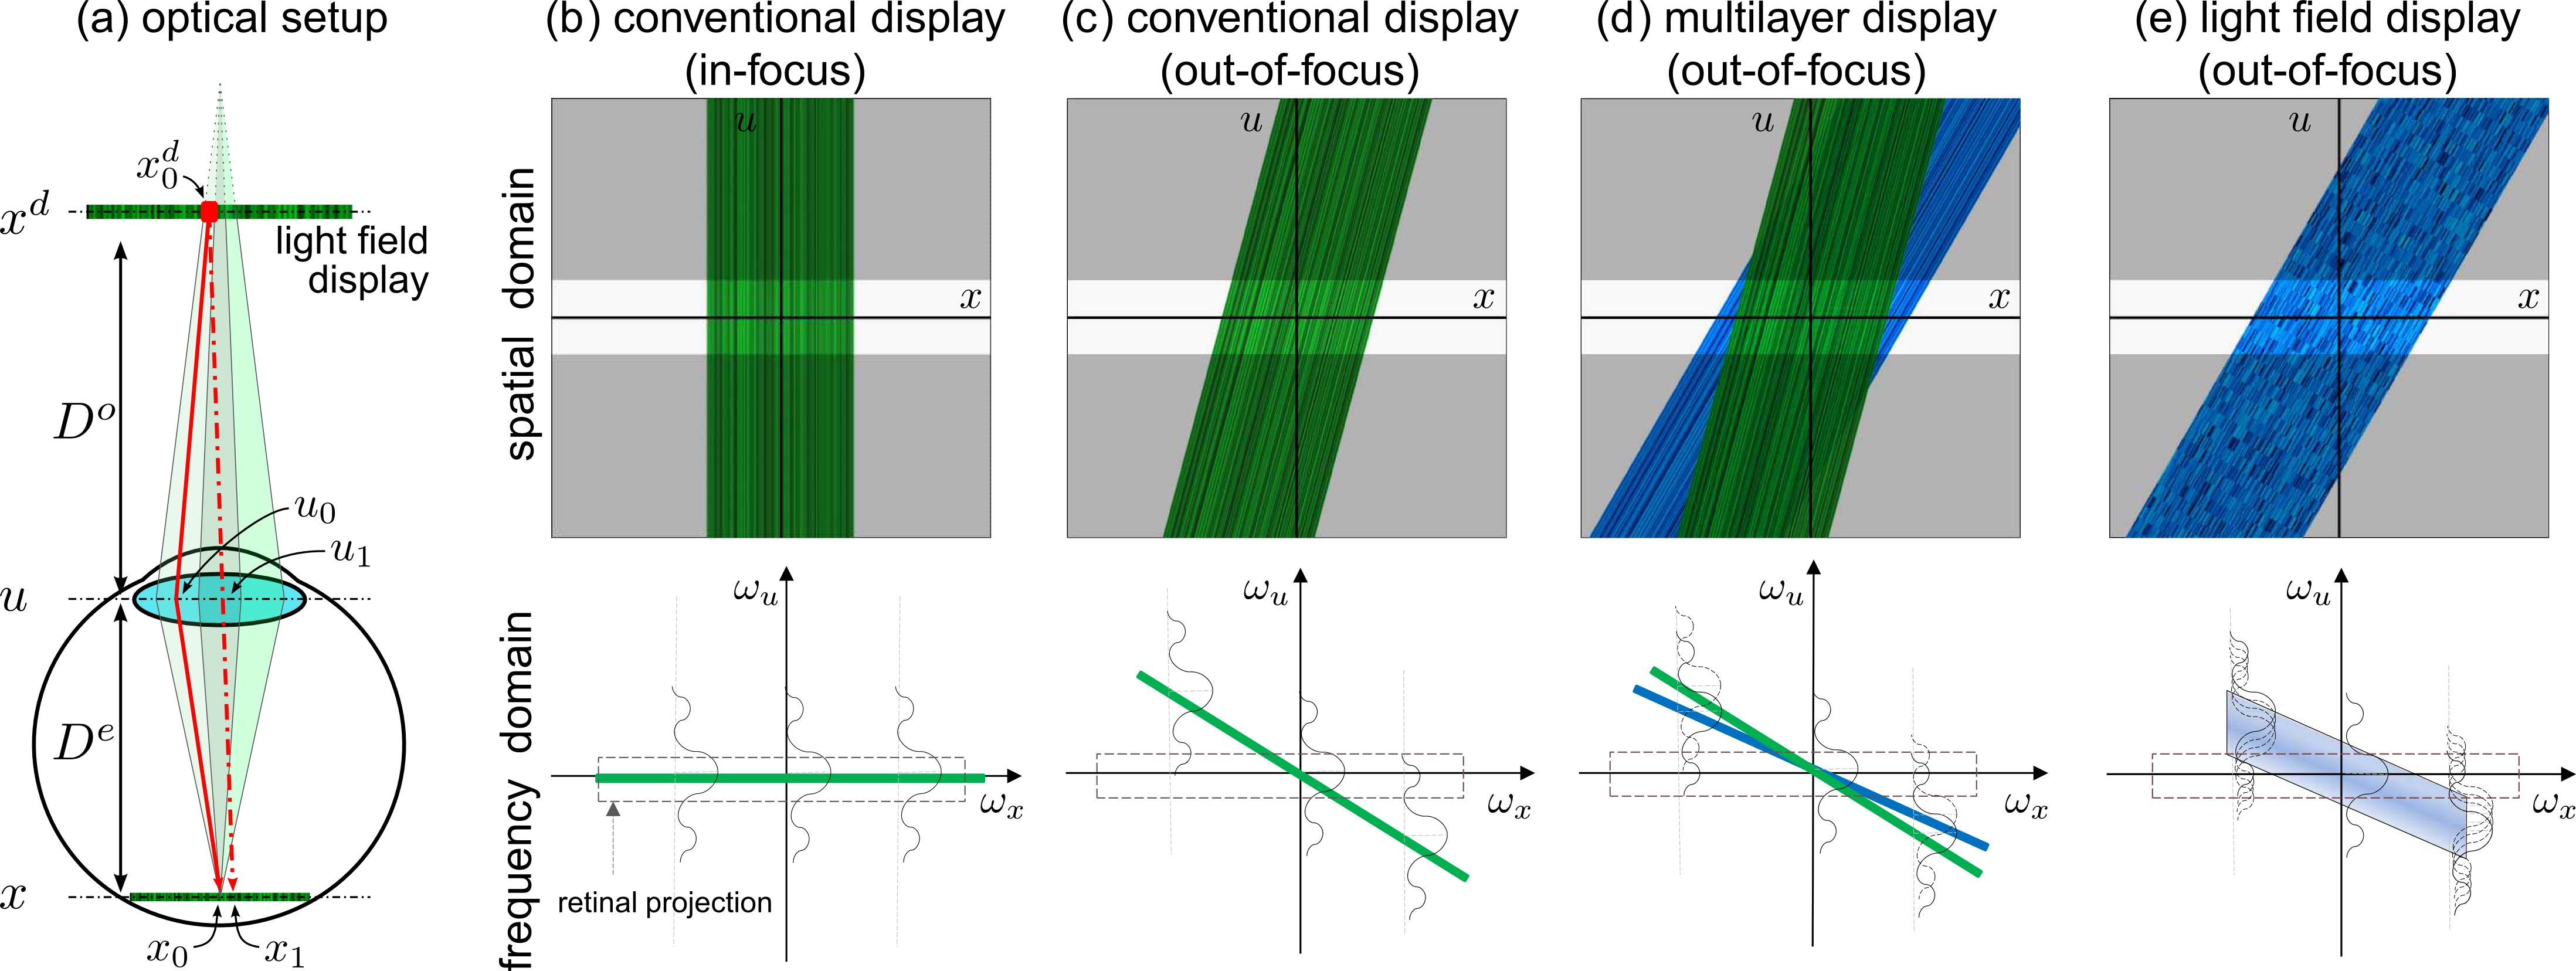 Light field analysis for different displays. The light field emitted by a display is parameterized by its coordinates on the screen xd, on the pupil u, and on the retina x (a). This light field propagates through the pupil and is projected into a 2D image on the retina. For an in-focus display, the light field incident on the retina is a horizontal line in the frequency domain (b). For a displayed image outside the accommodation range of the observer, the corresponding light field is slanted and energy is lost at some spatial frequencies (c). Multilayer displays utilize an additional display layer to preserve all spatial frequencies (d). With light field displays, frequency loss is also avoided; the perceived image frequencies are a combination of all spatio-angular frequencies of the incident light field (e). The ray paths in (a) show two effects for a hyperopic eye observing a light field display. First, each photoreceptor on the retina averages over multiple neighboring pixels on the screen (green shaded regions). Second, each pixel on the screen (e.g., xd0) emits different intensities toward different regions on the pupil (u0,u1), allowing the same pixel to appear differently when observed from different locations (x0,x1) on the retina (red arrows).